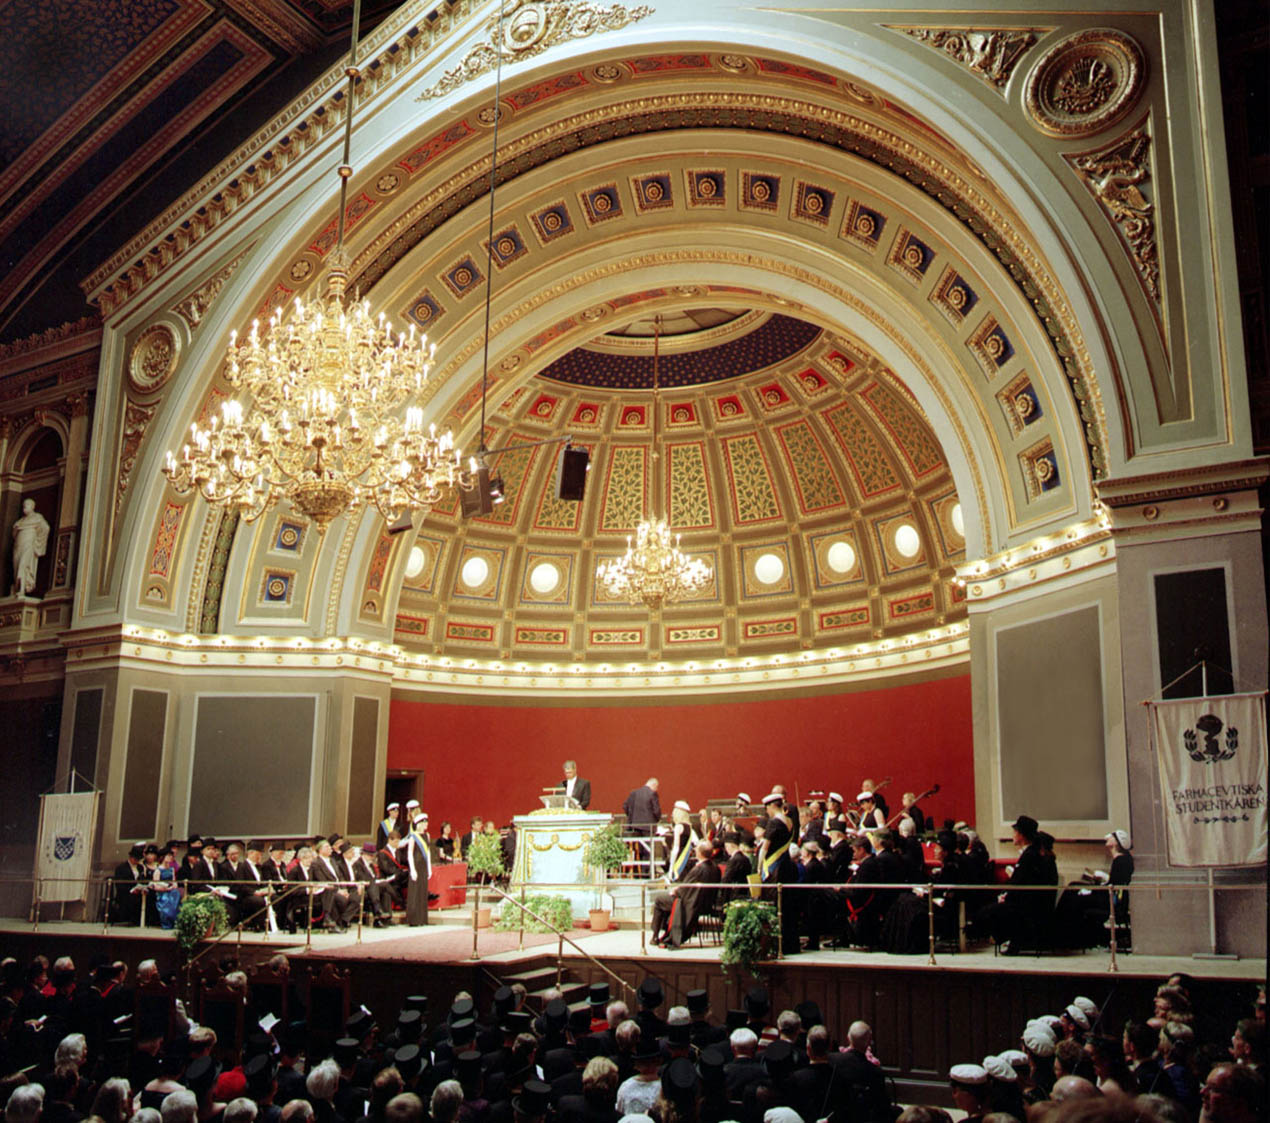 Orchestra at Uppsala University